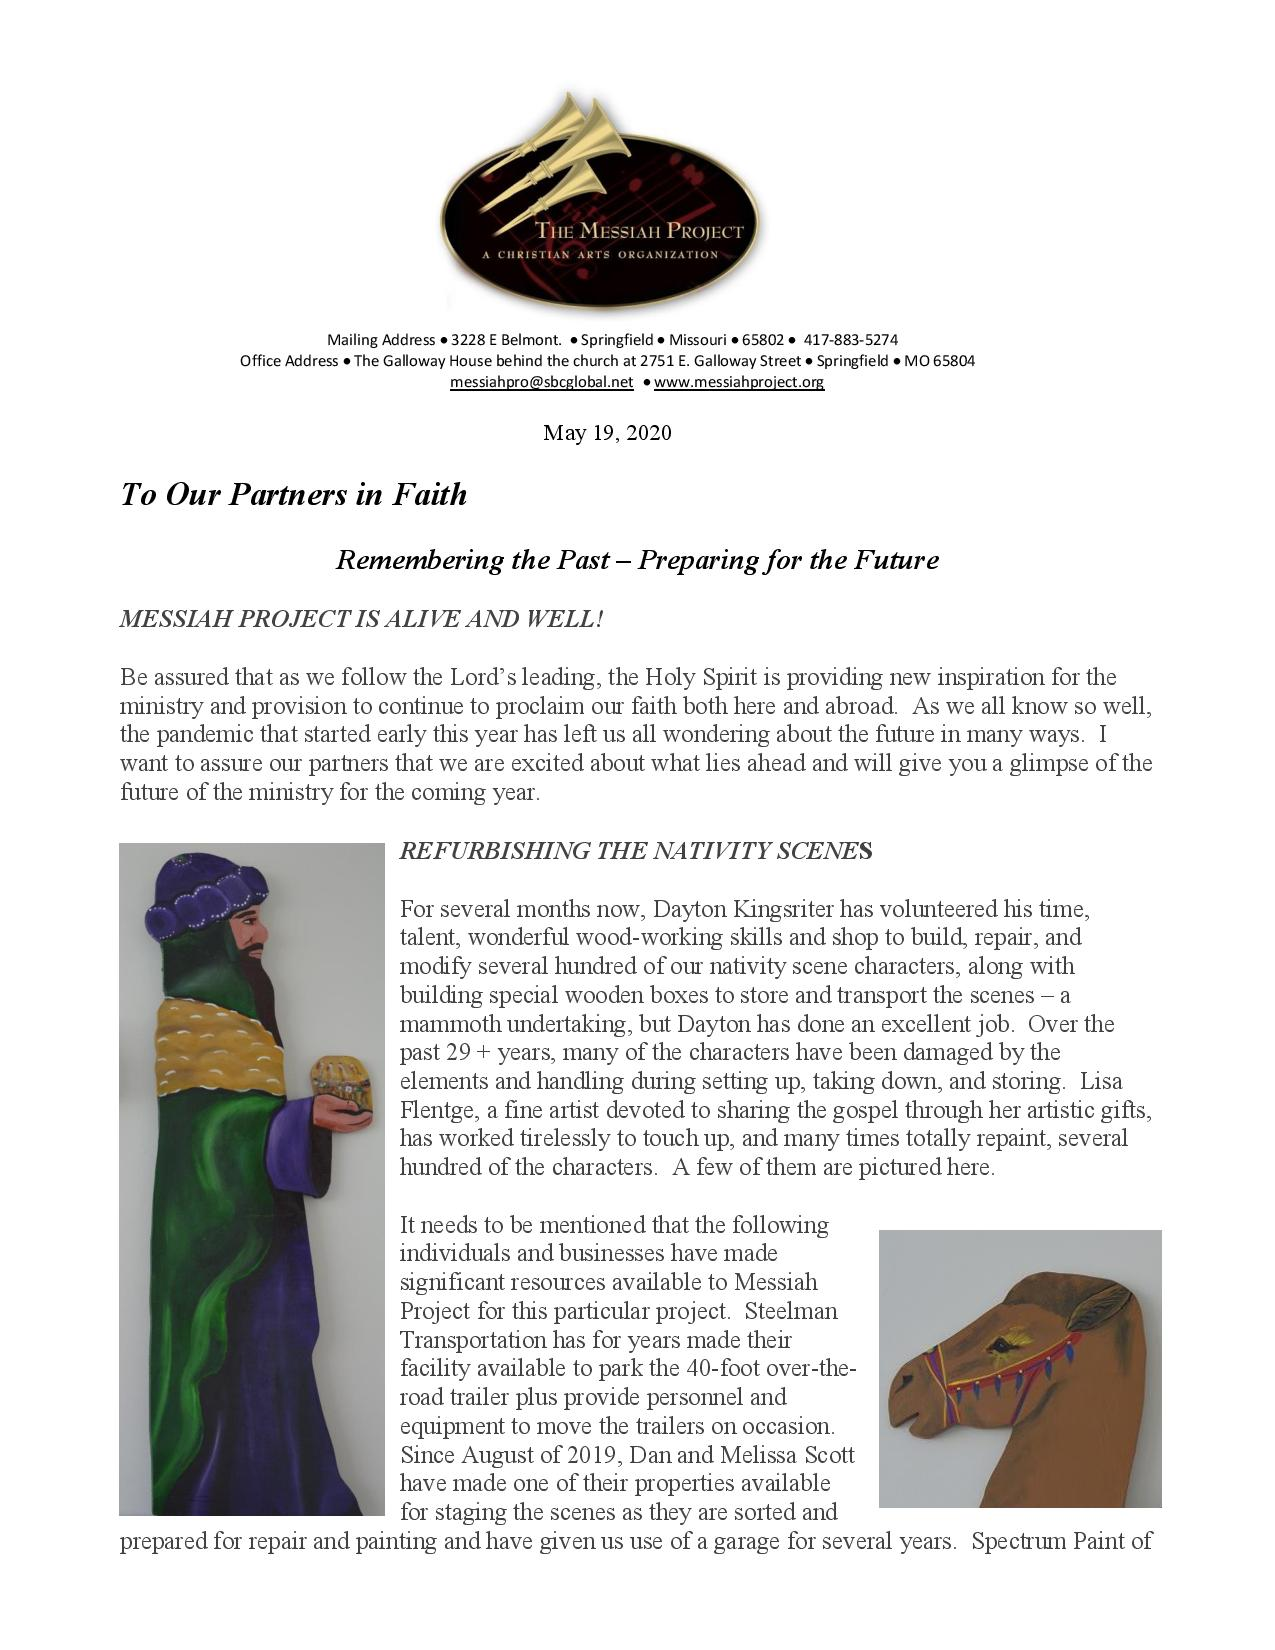 PartnerLtr 5.19.20-converted-page-001